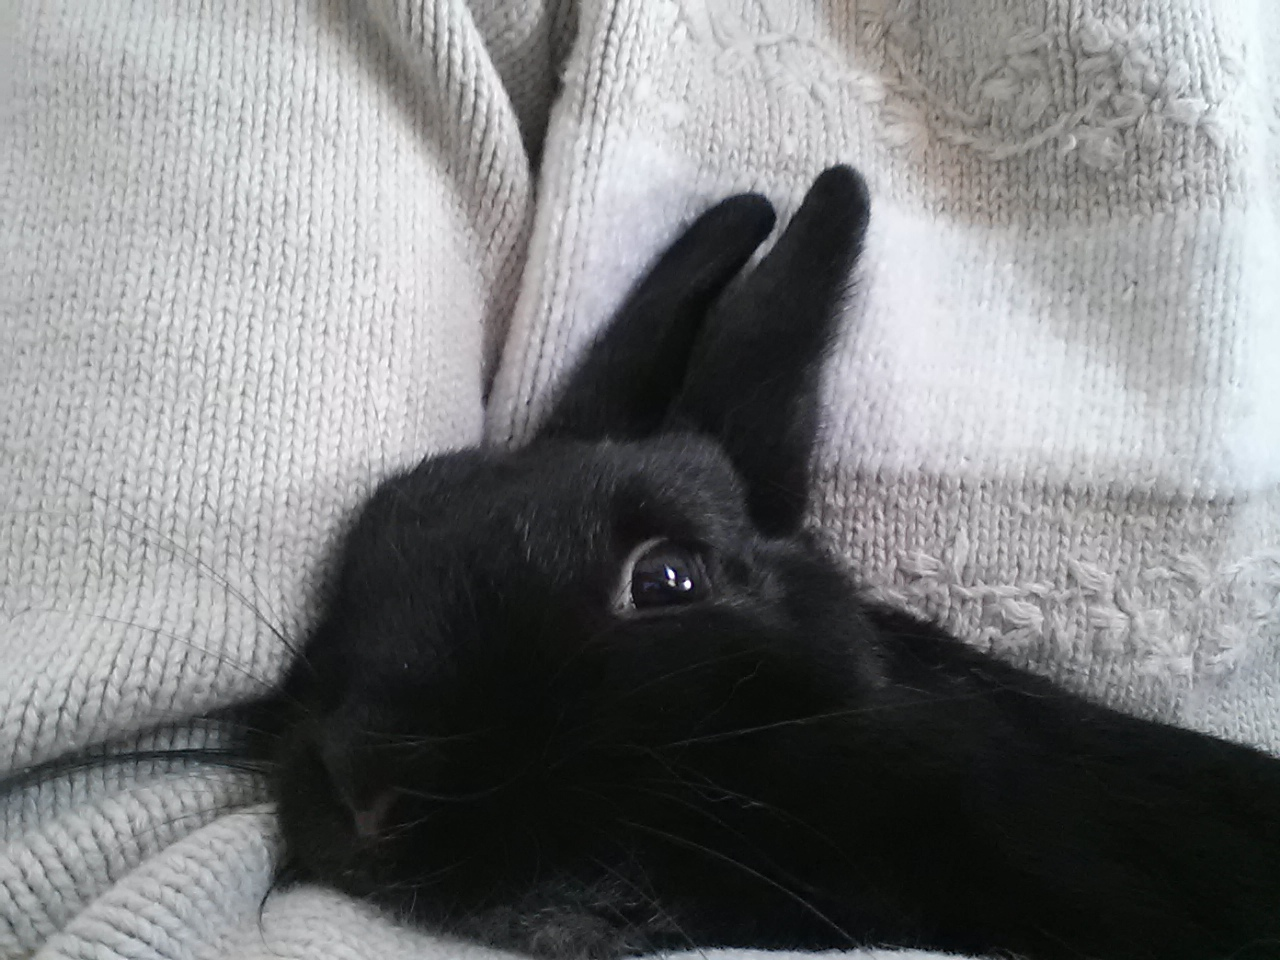 Bunny Snuggles Up in Her Human's Arms